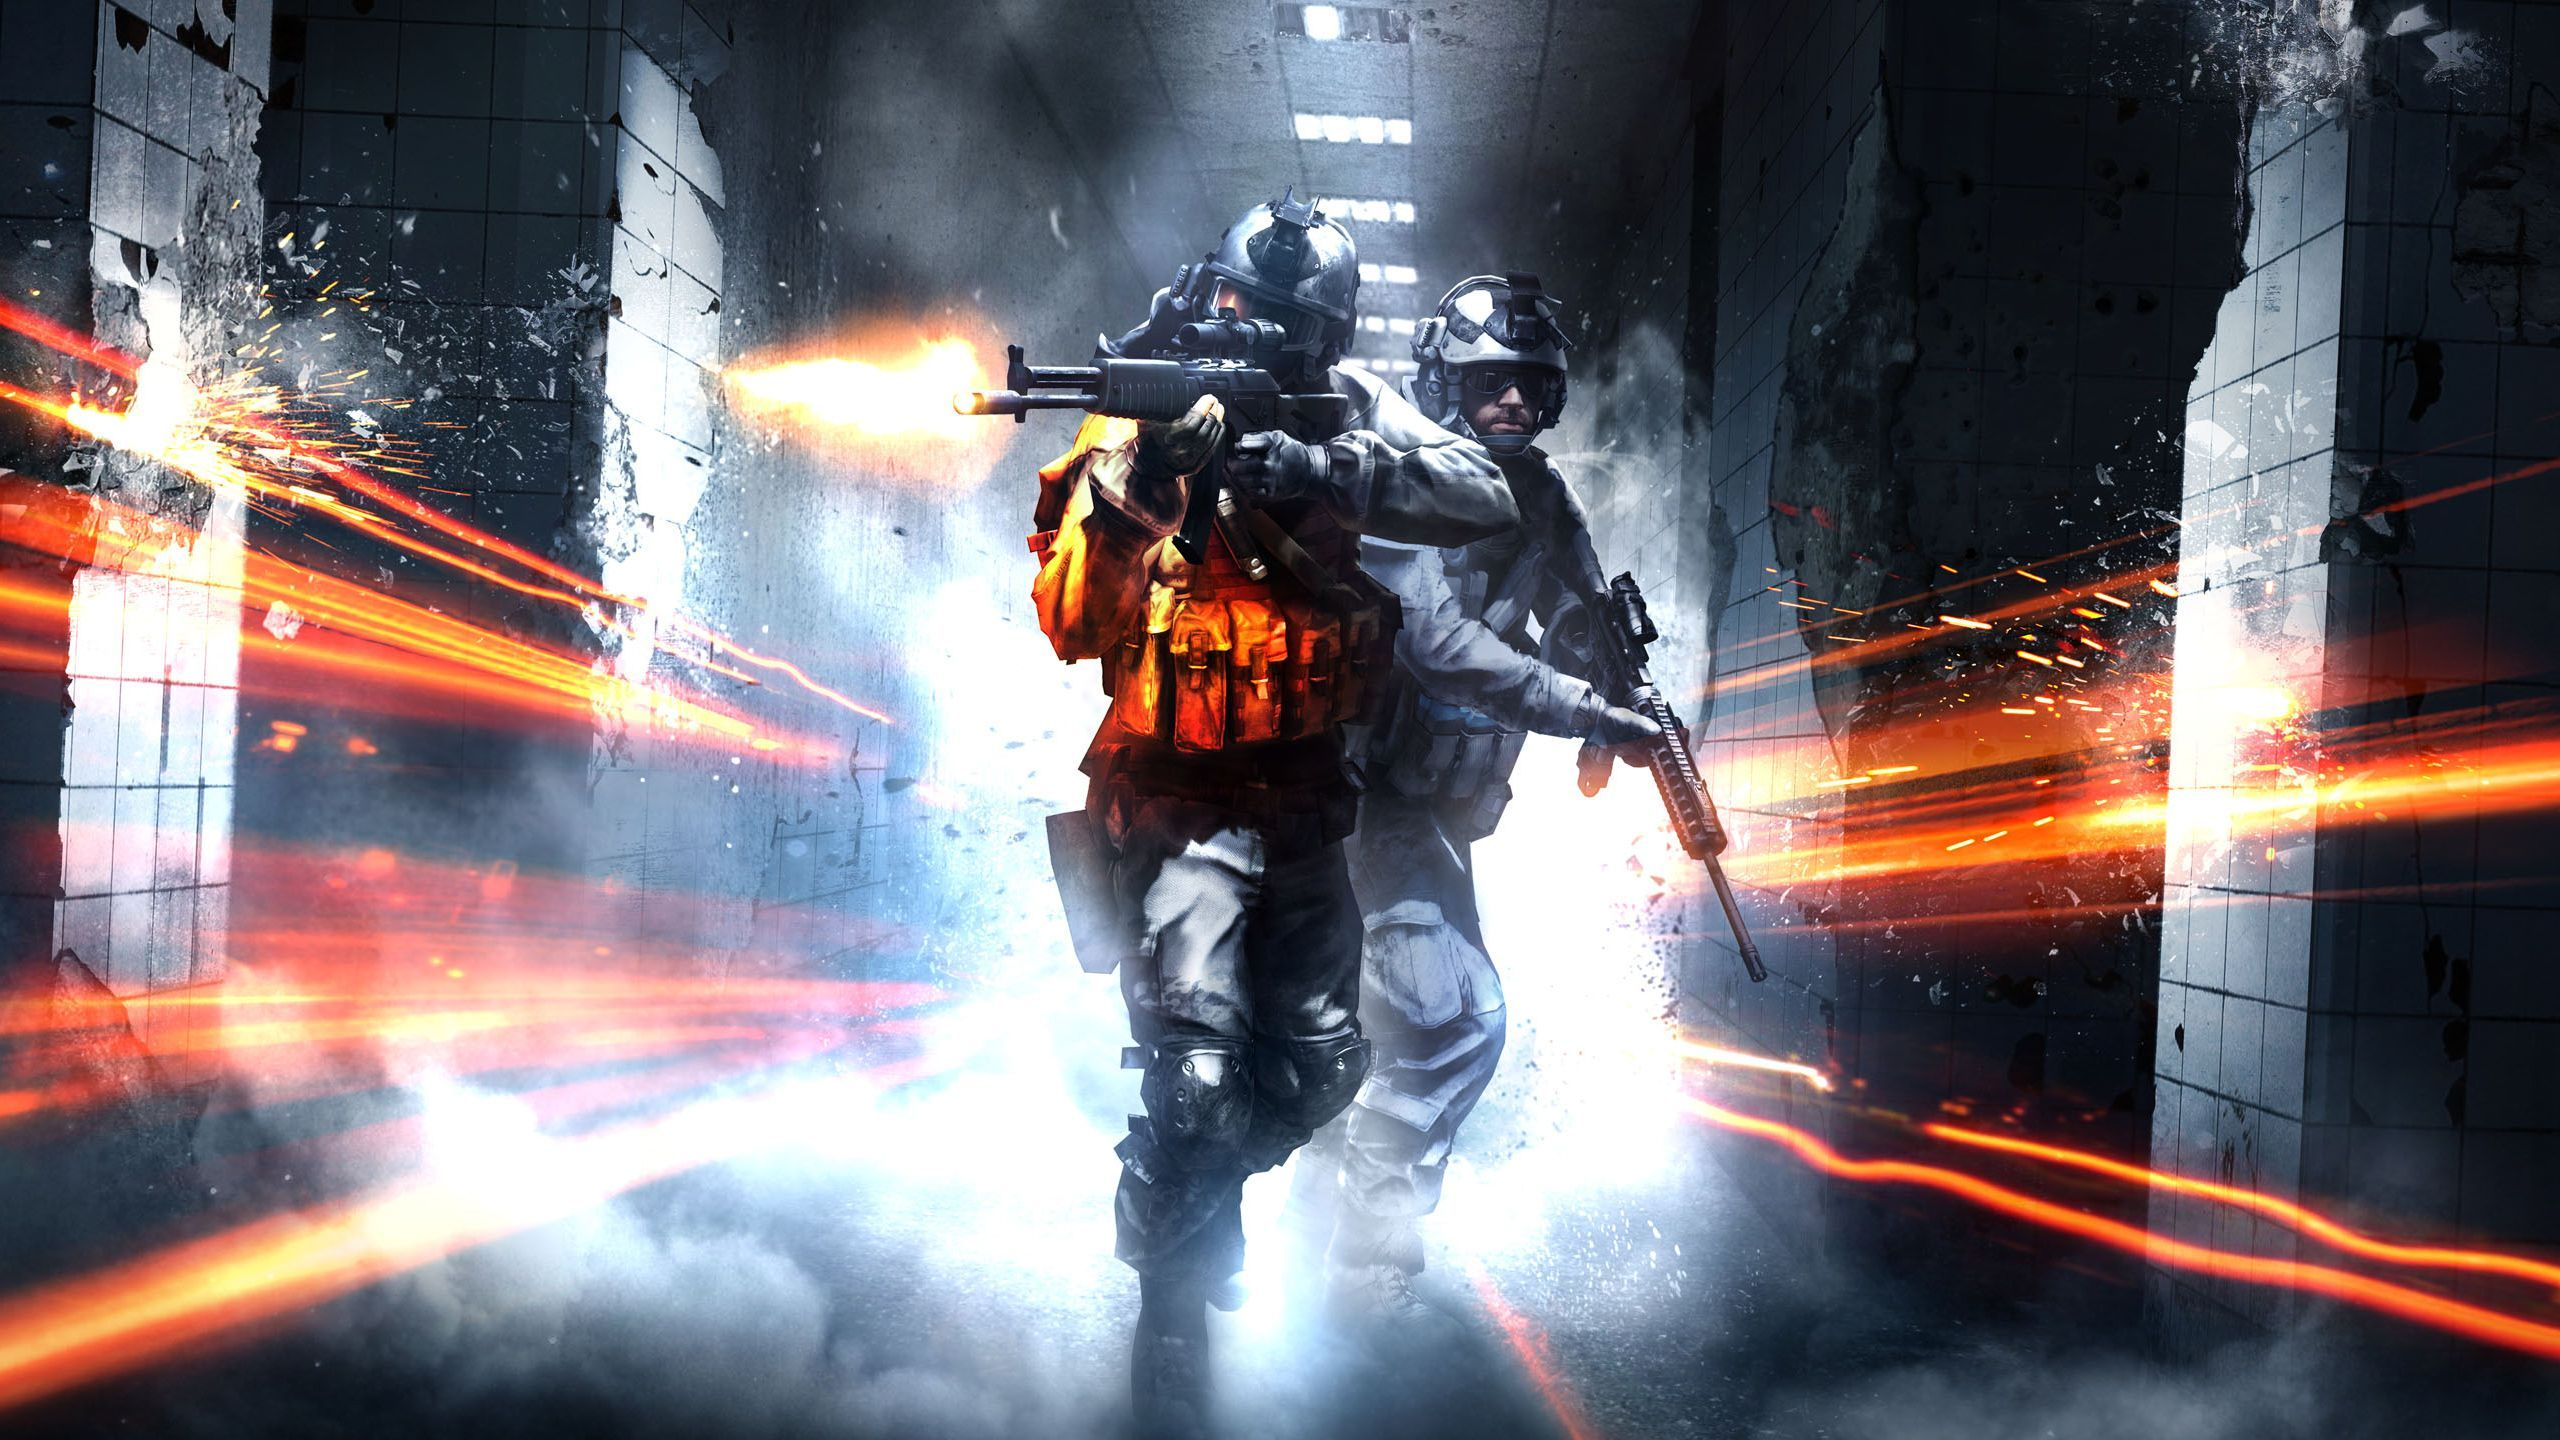 Wallpaper 1920x1200 Battlefield 3 HD Wallpaper 2560x1440 Battlefield 3 2560x1440